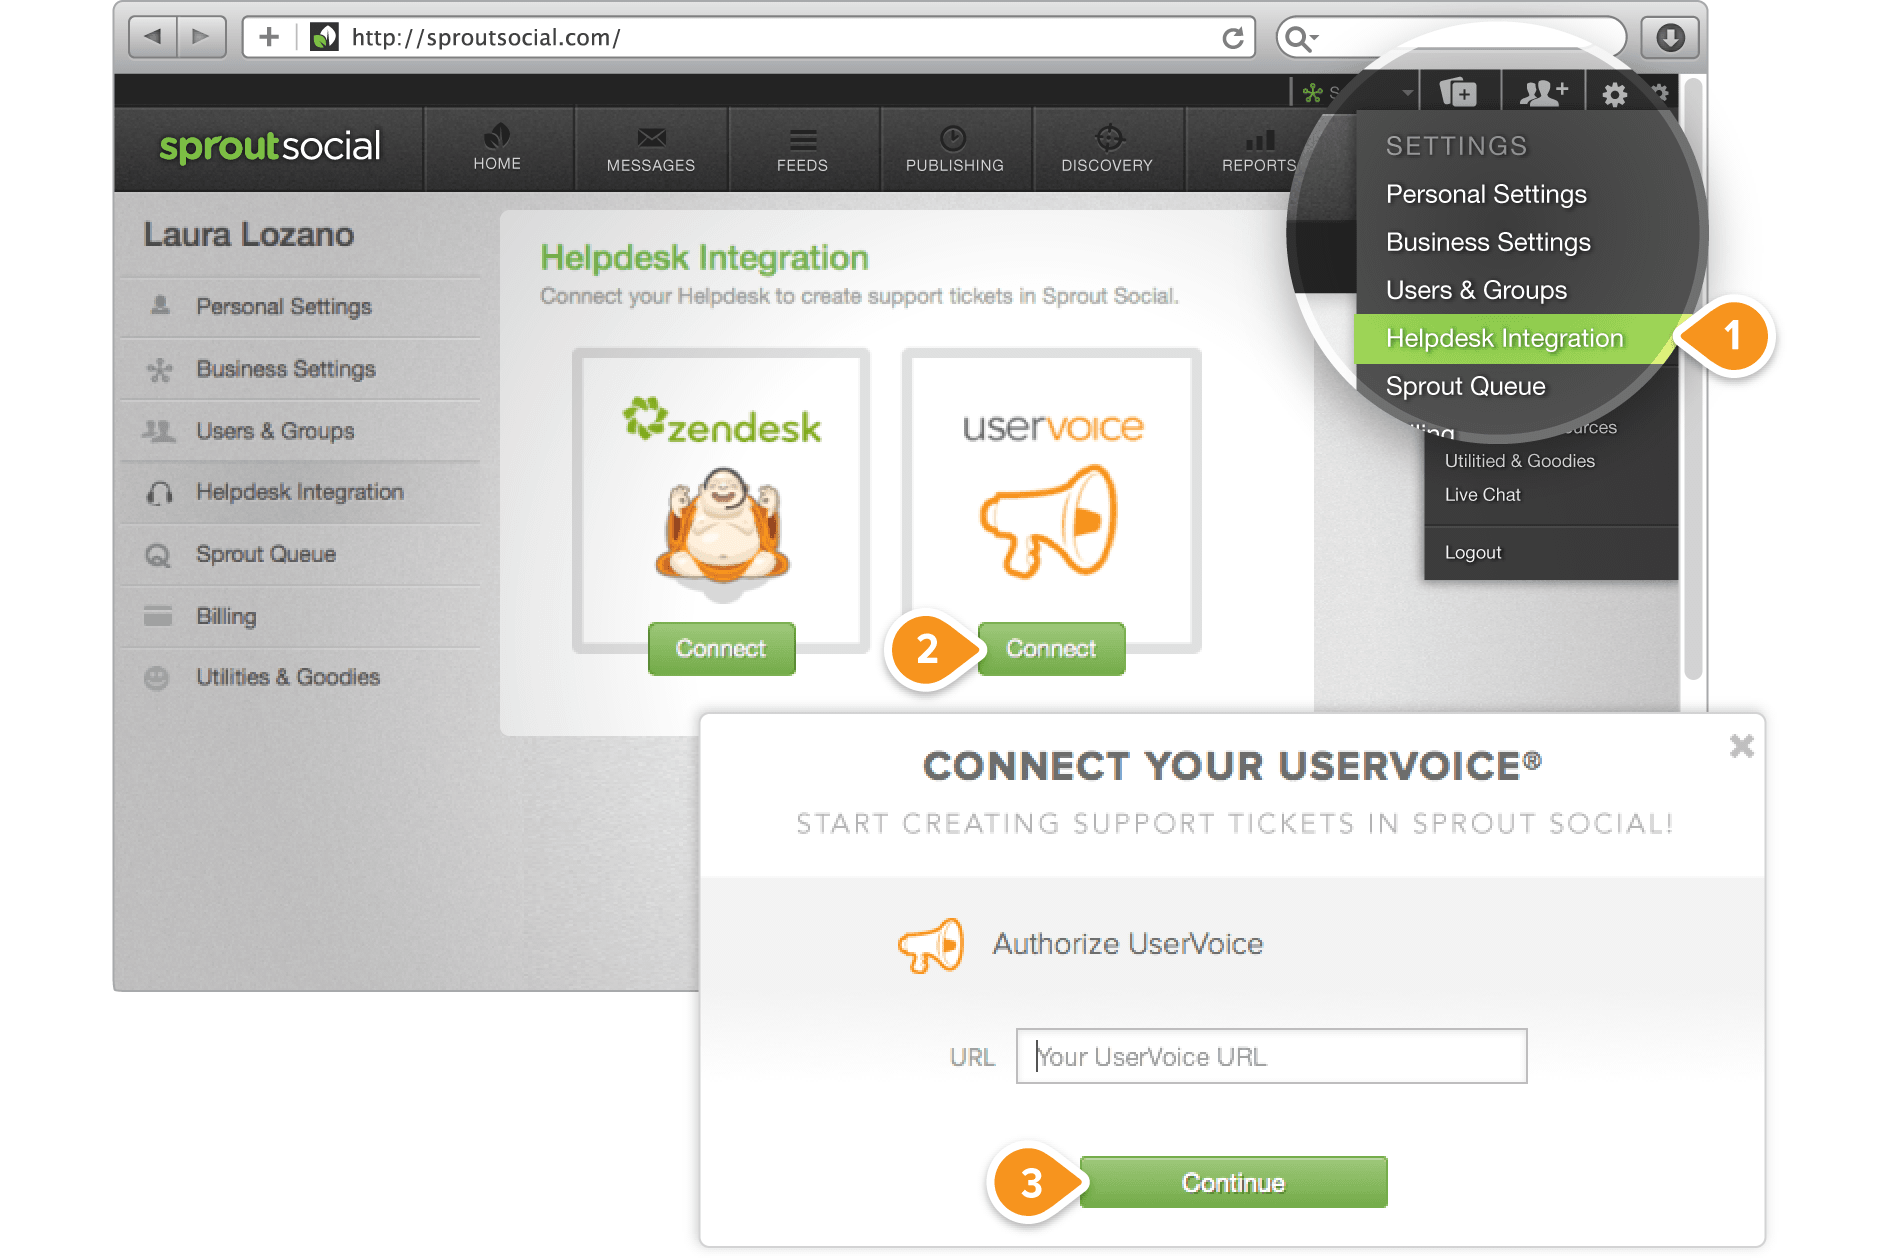 How to integrate your UserVoice® account into Sprout